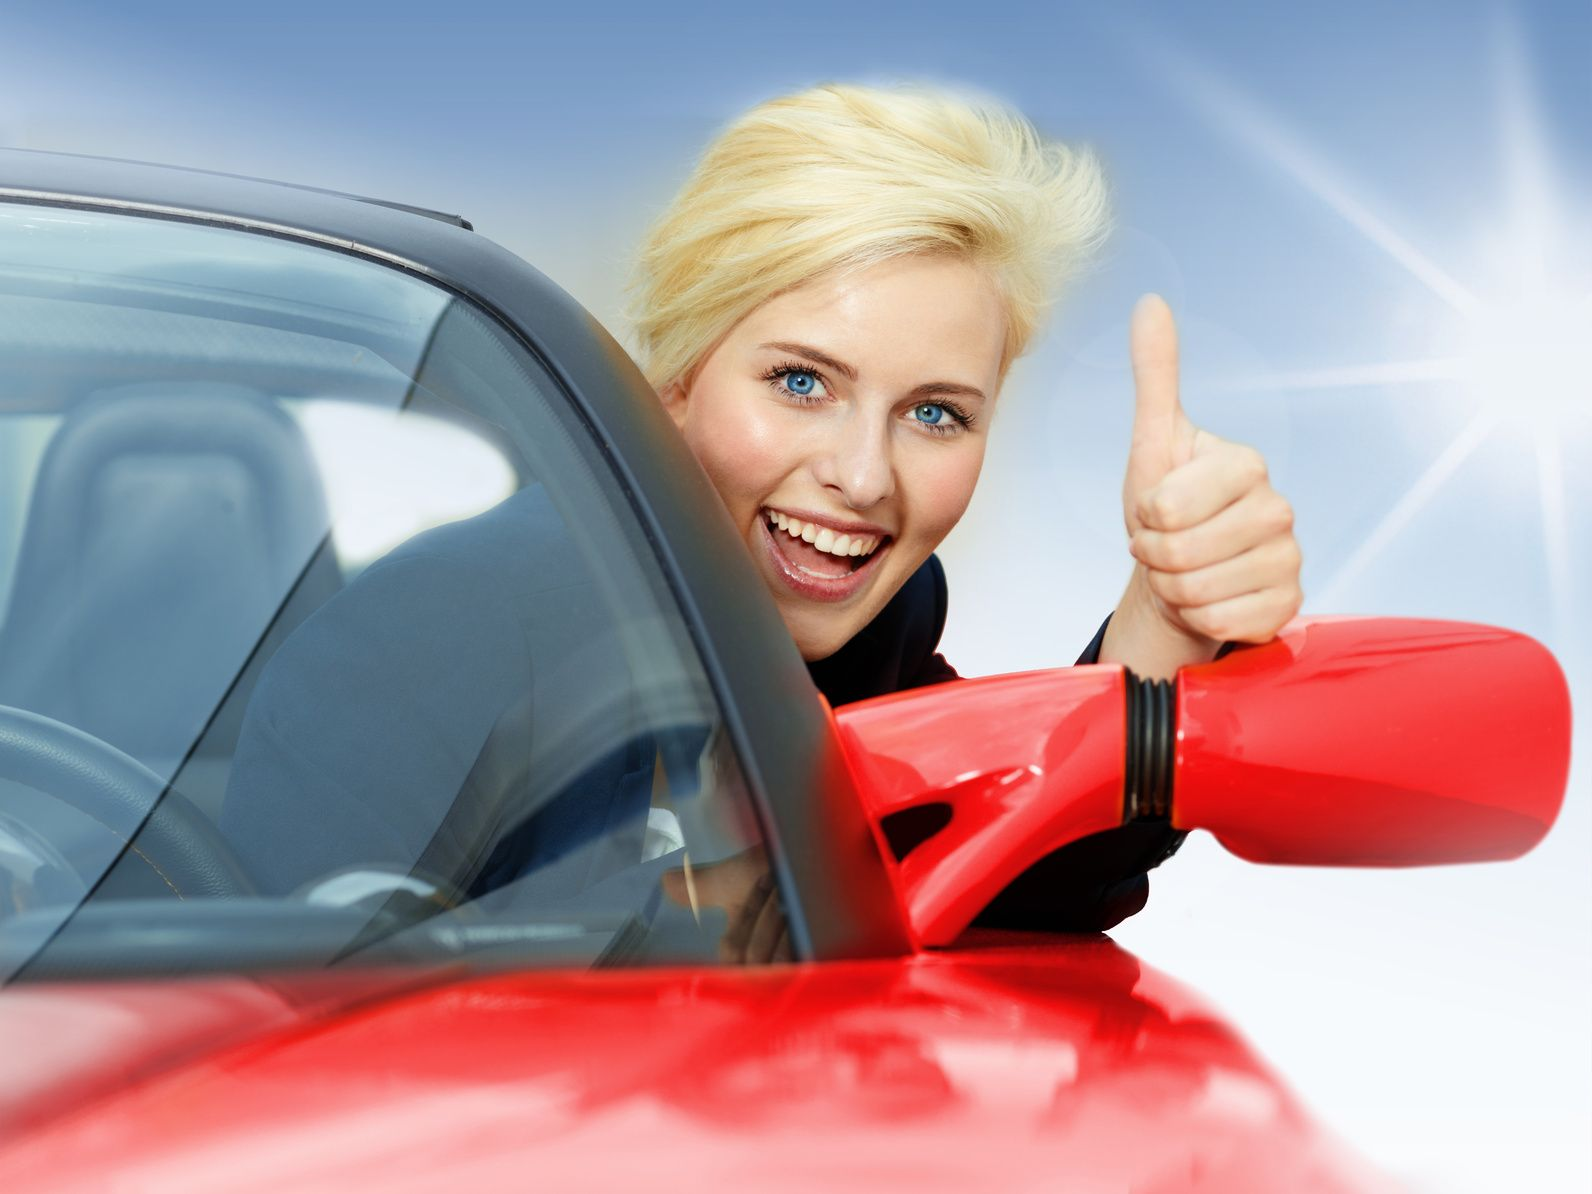 Auto Insurance Quote If You Are Looking For Car Insurance Quotes High Risk Then It Won't .